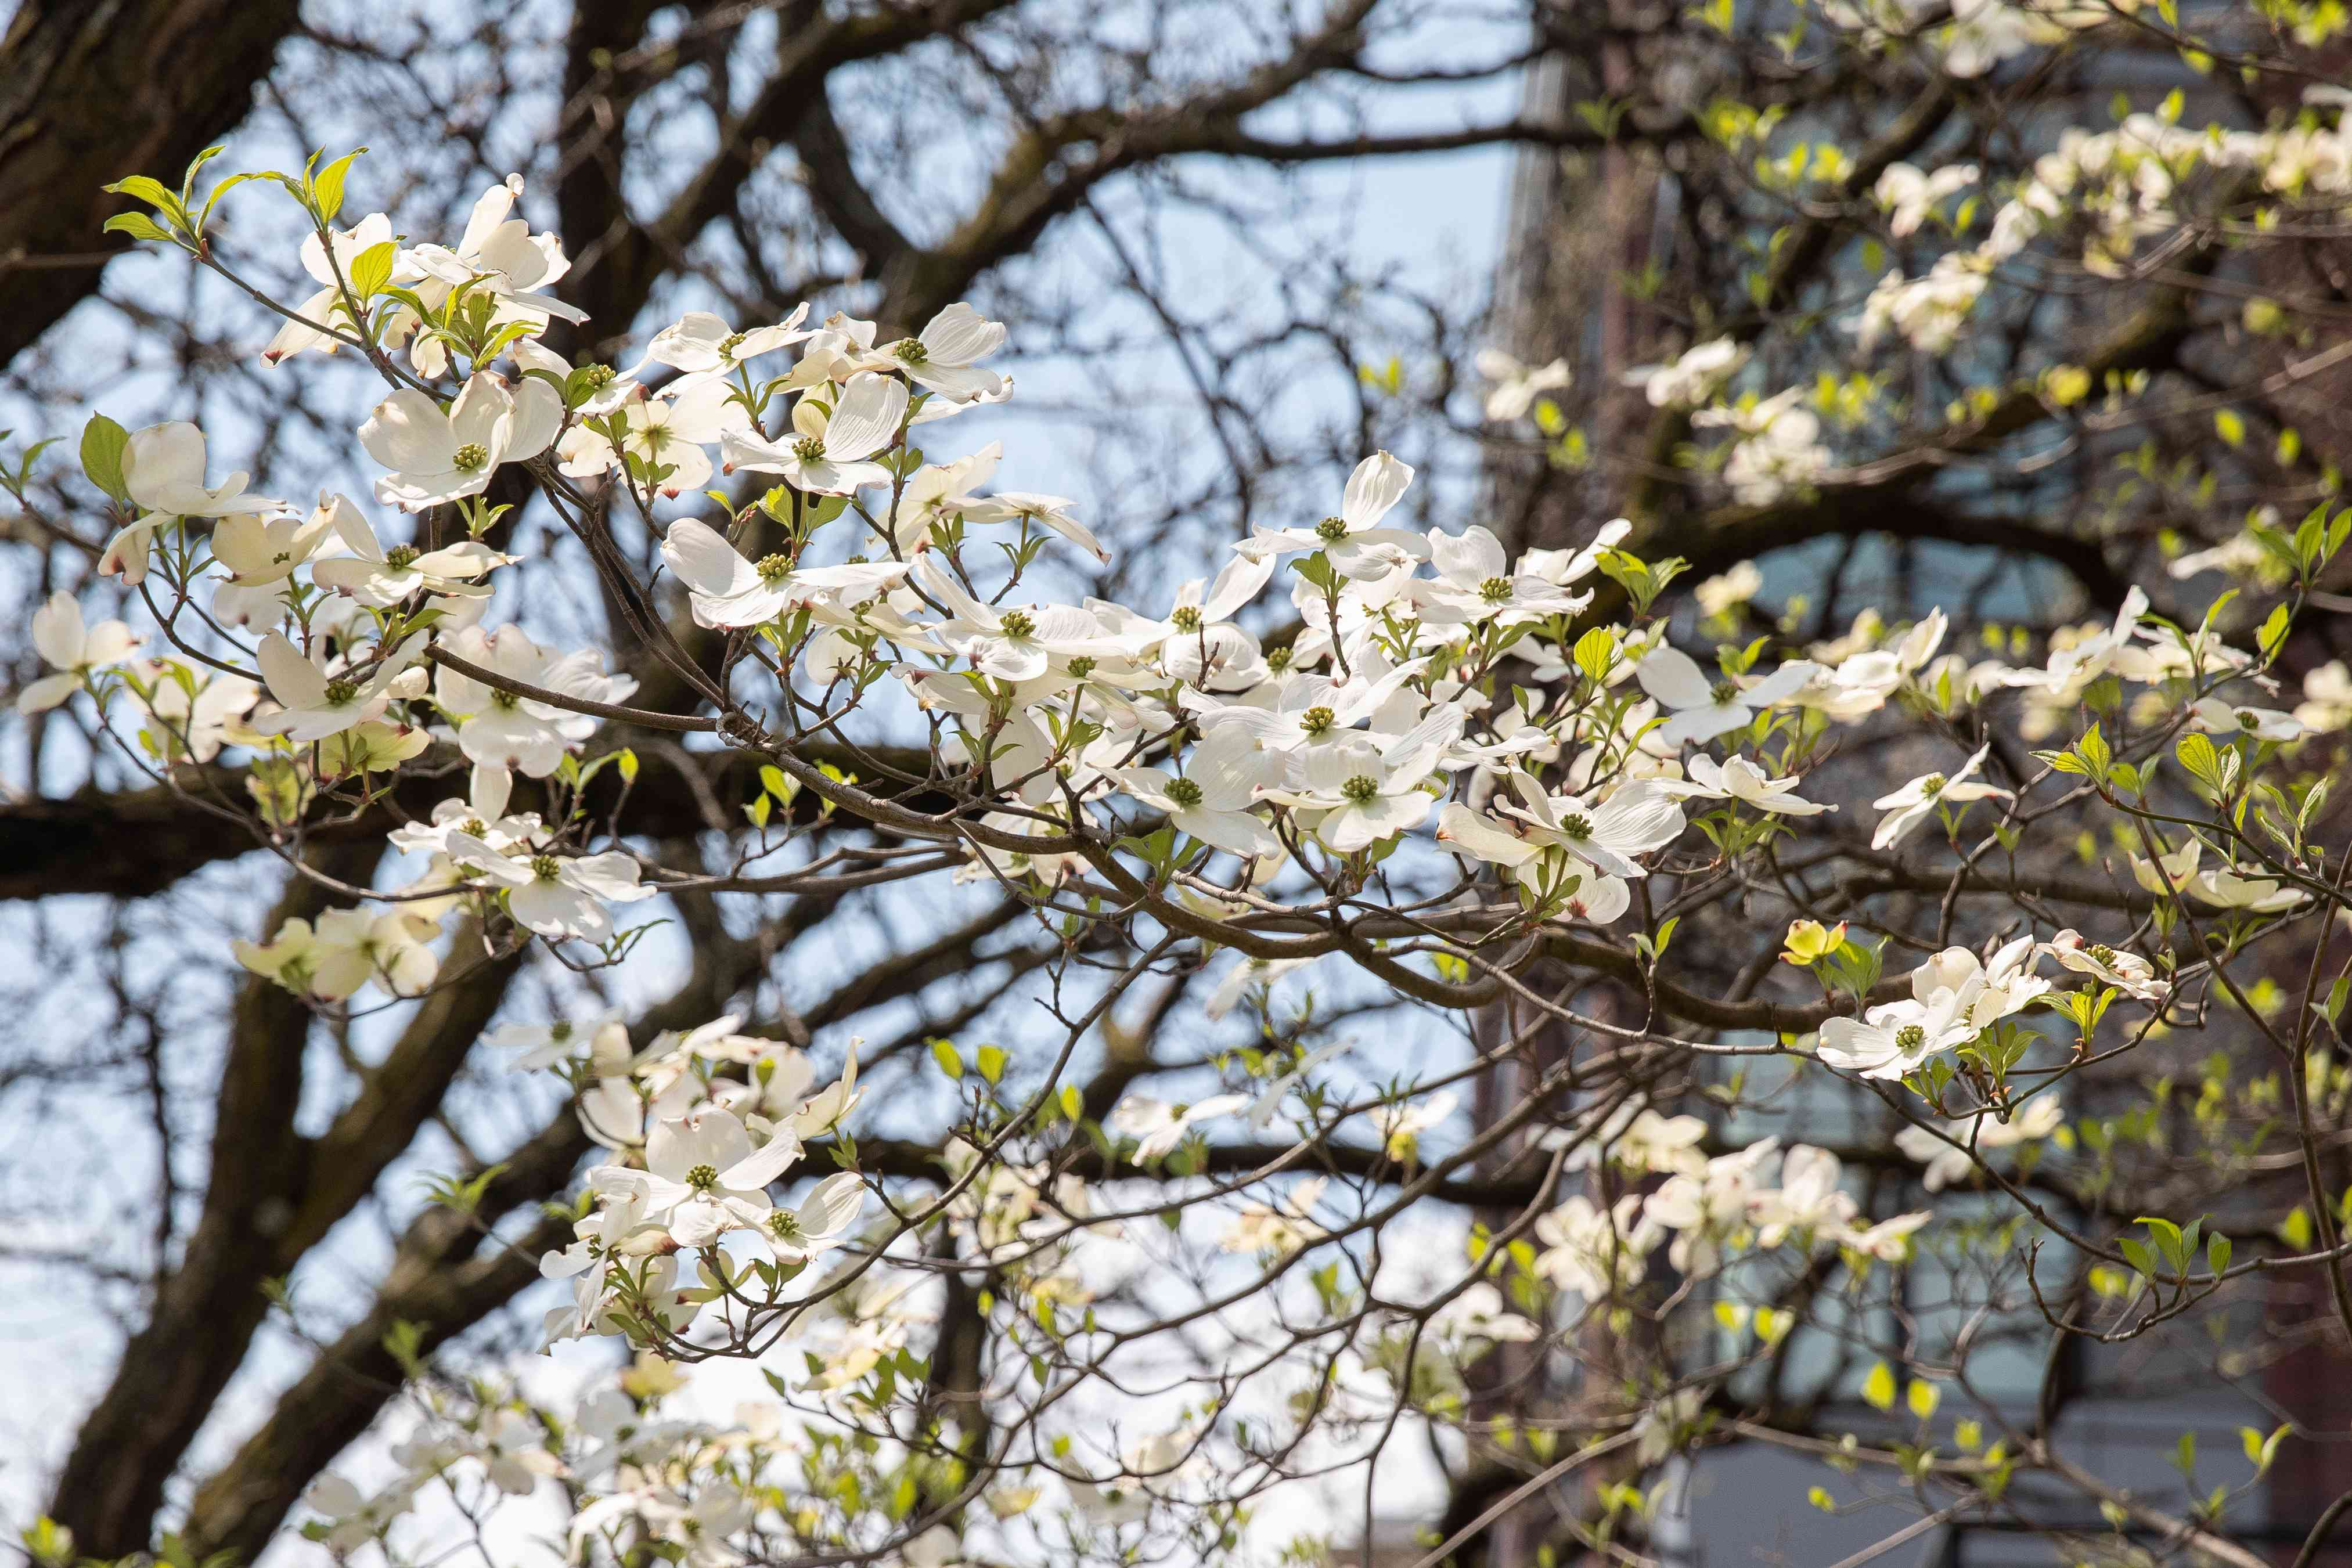 Dogwood tree with white flowers growing on bare branches in sunlight